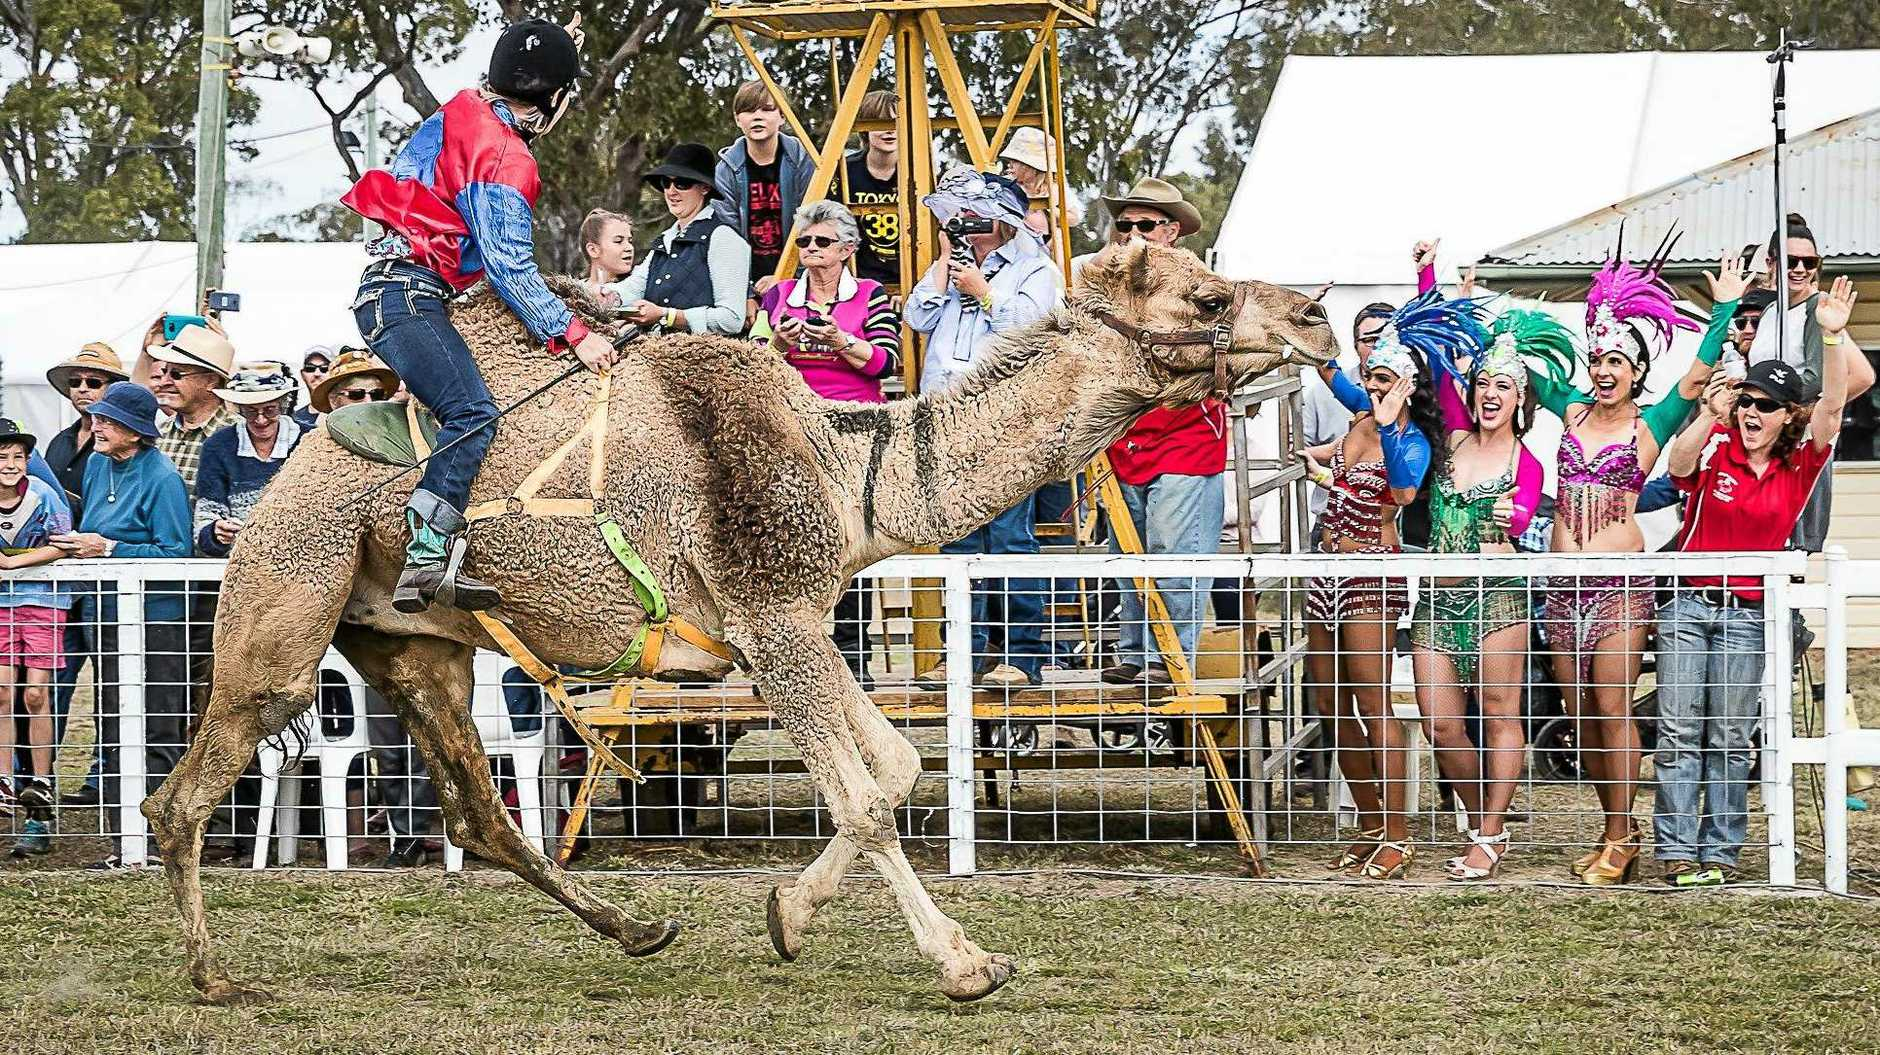 CAMELS AND CULTURE: The famous camel races are a huge draw card for crowds visiting the Tara Festival of Culture.